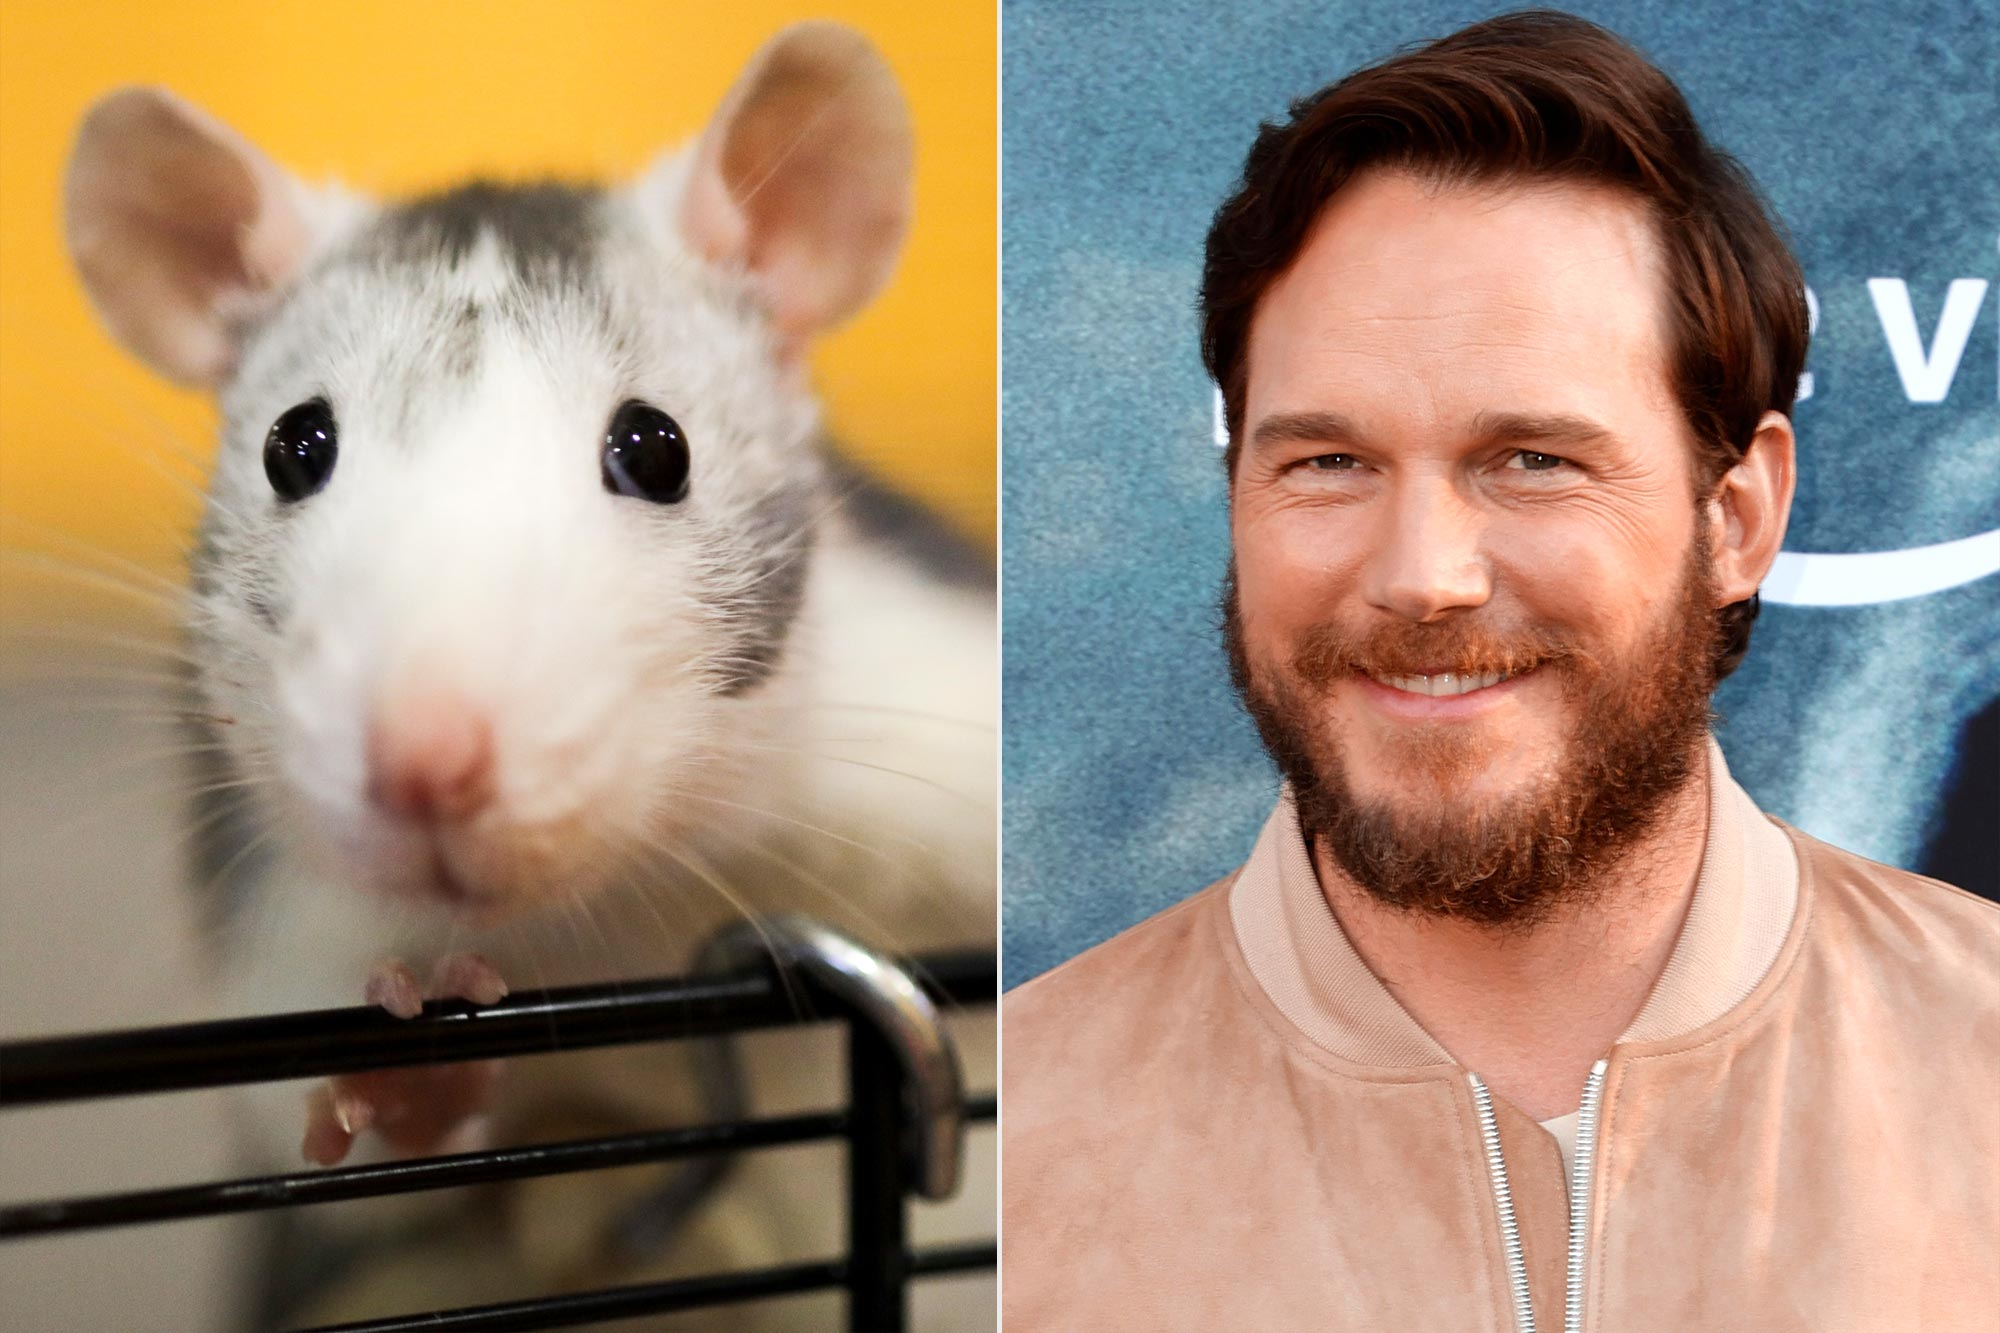 One of the rodent performers in The Suicide Squad was named Crisp Ratt; Chris Pratt